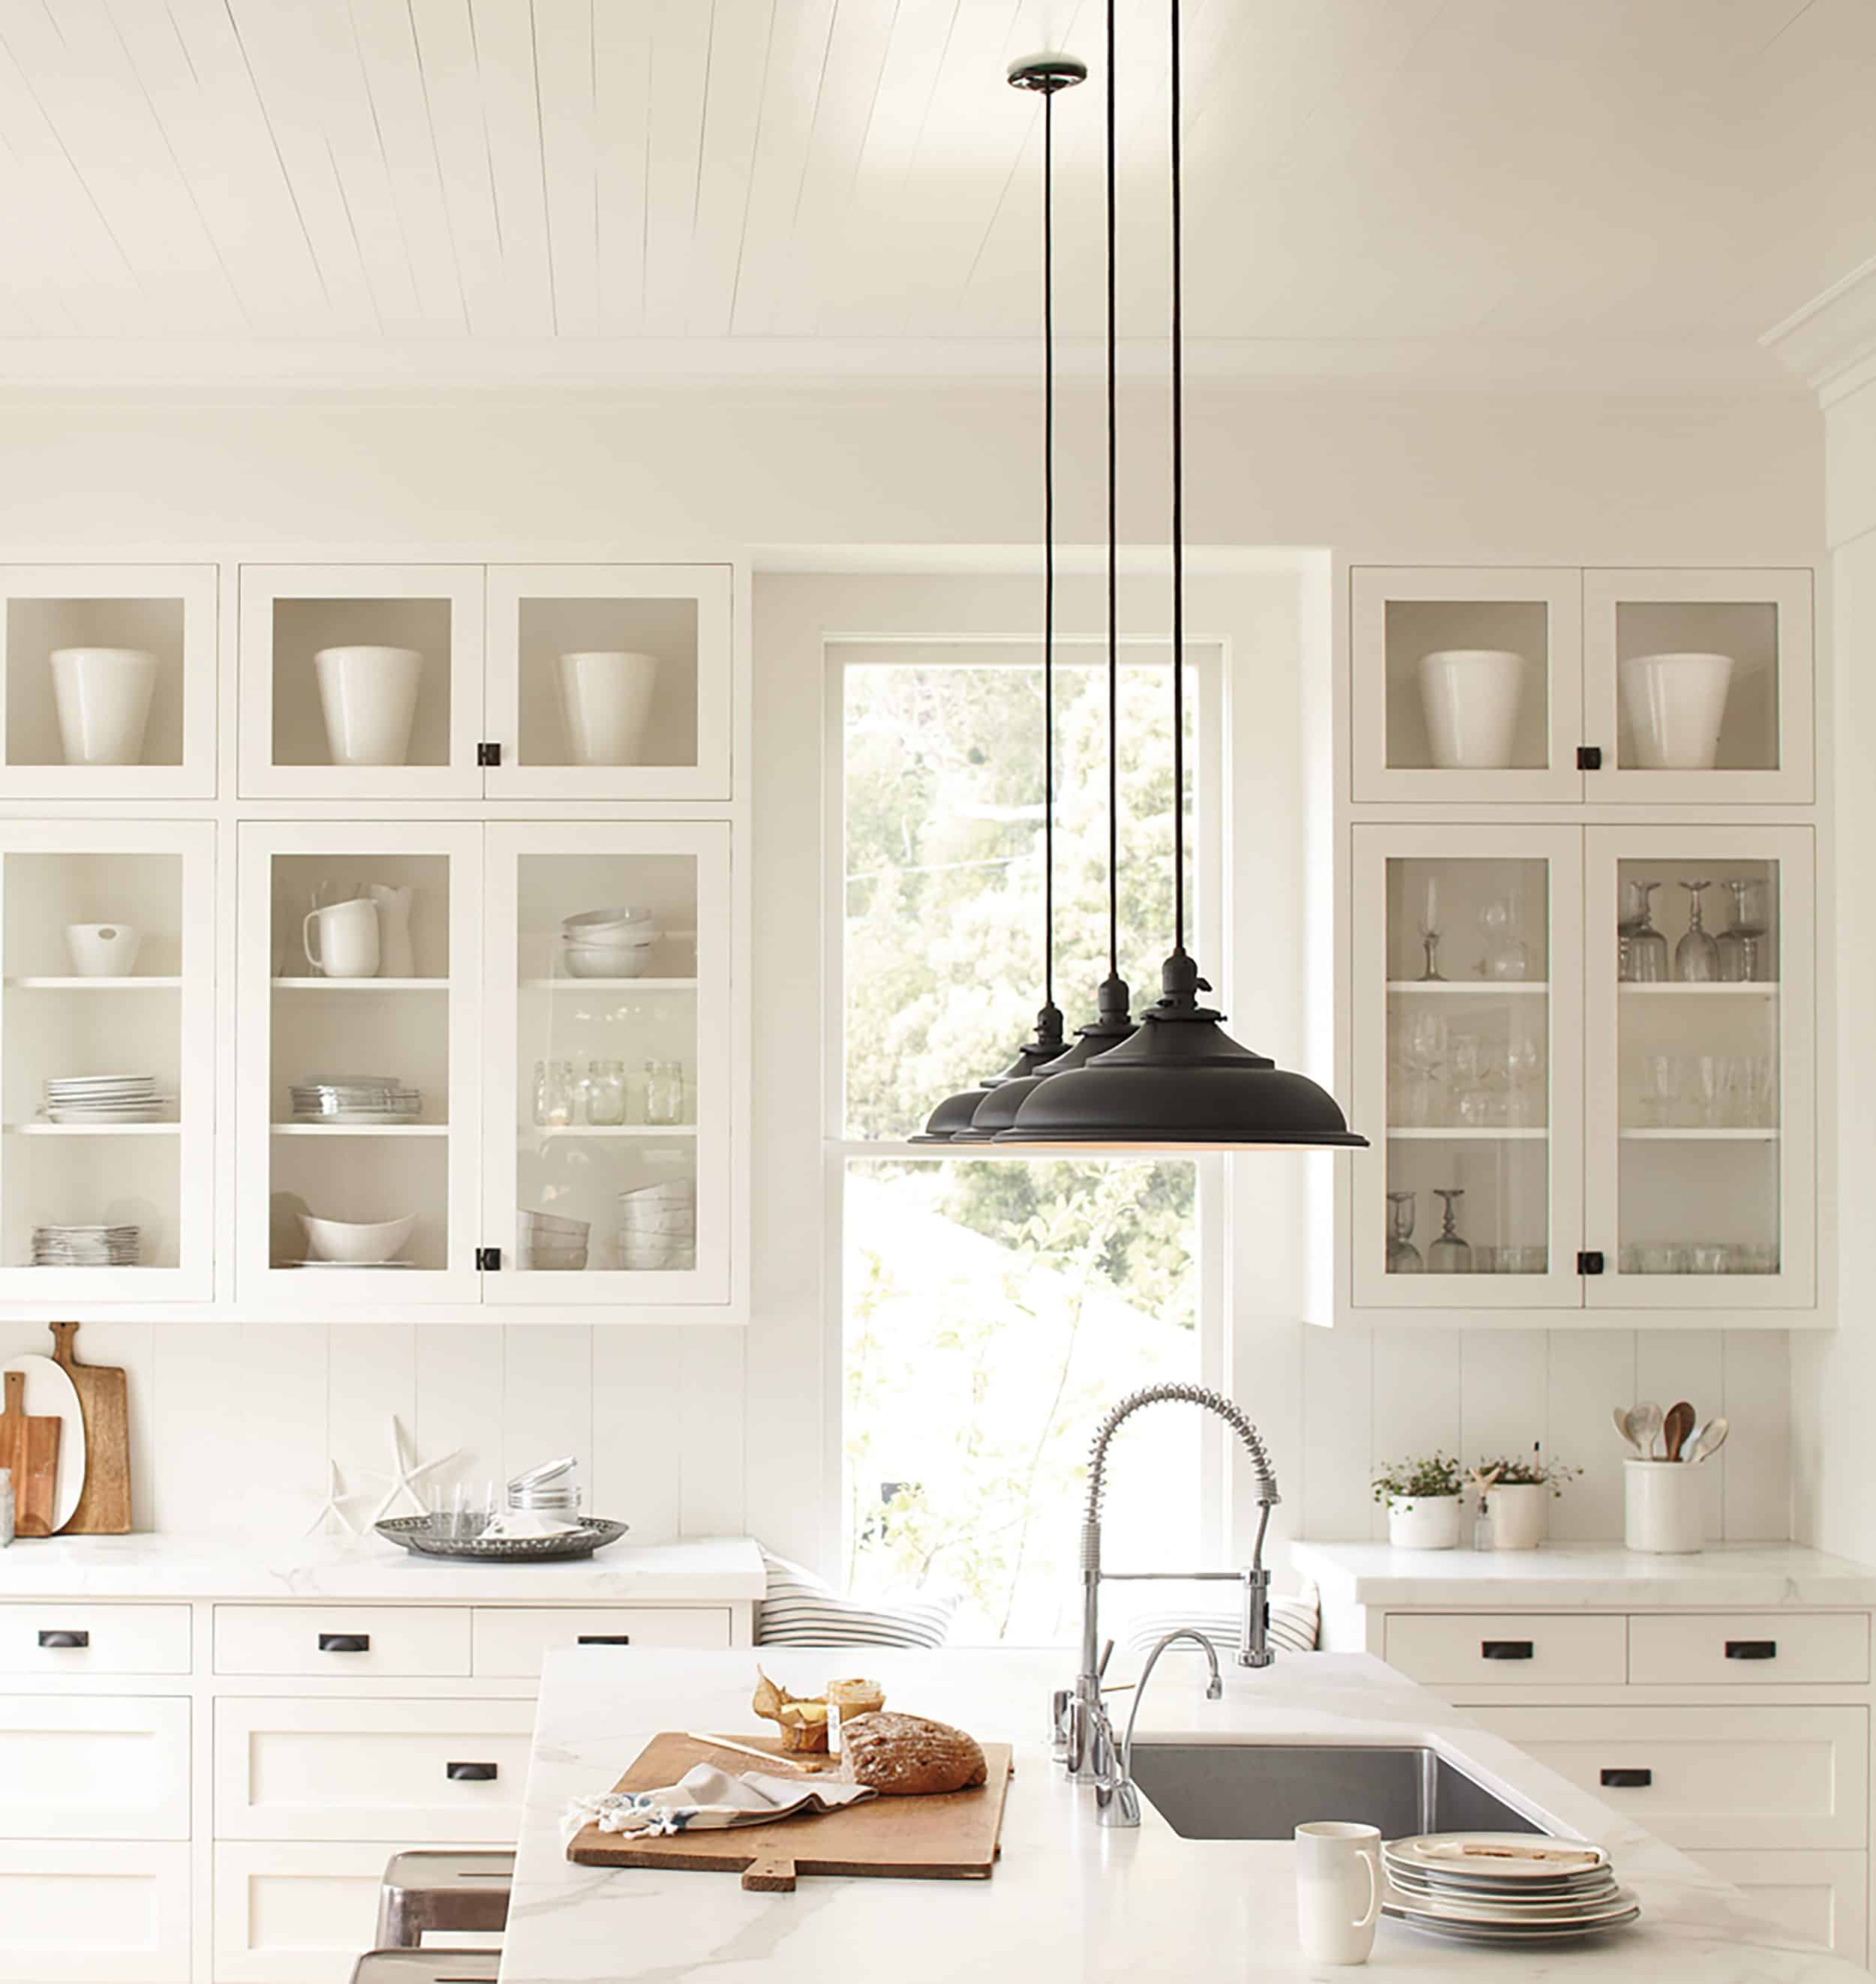 White Farmhouse Kitchen With Glass Cabinets